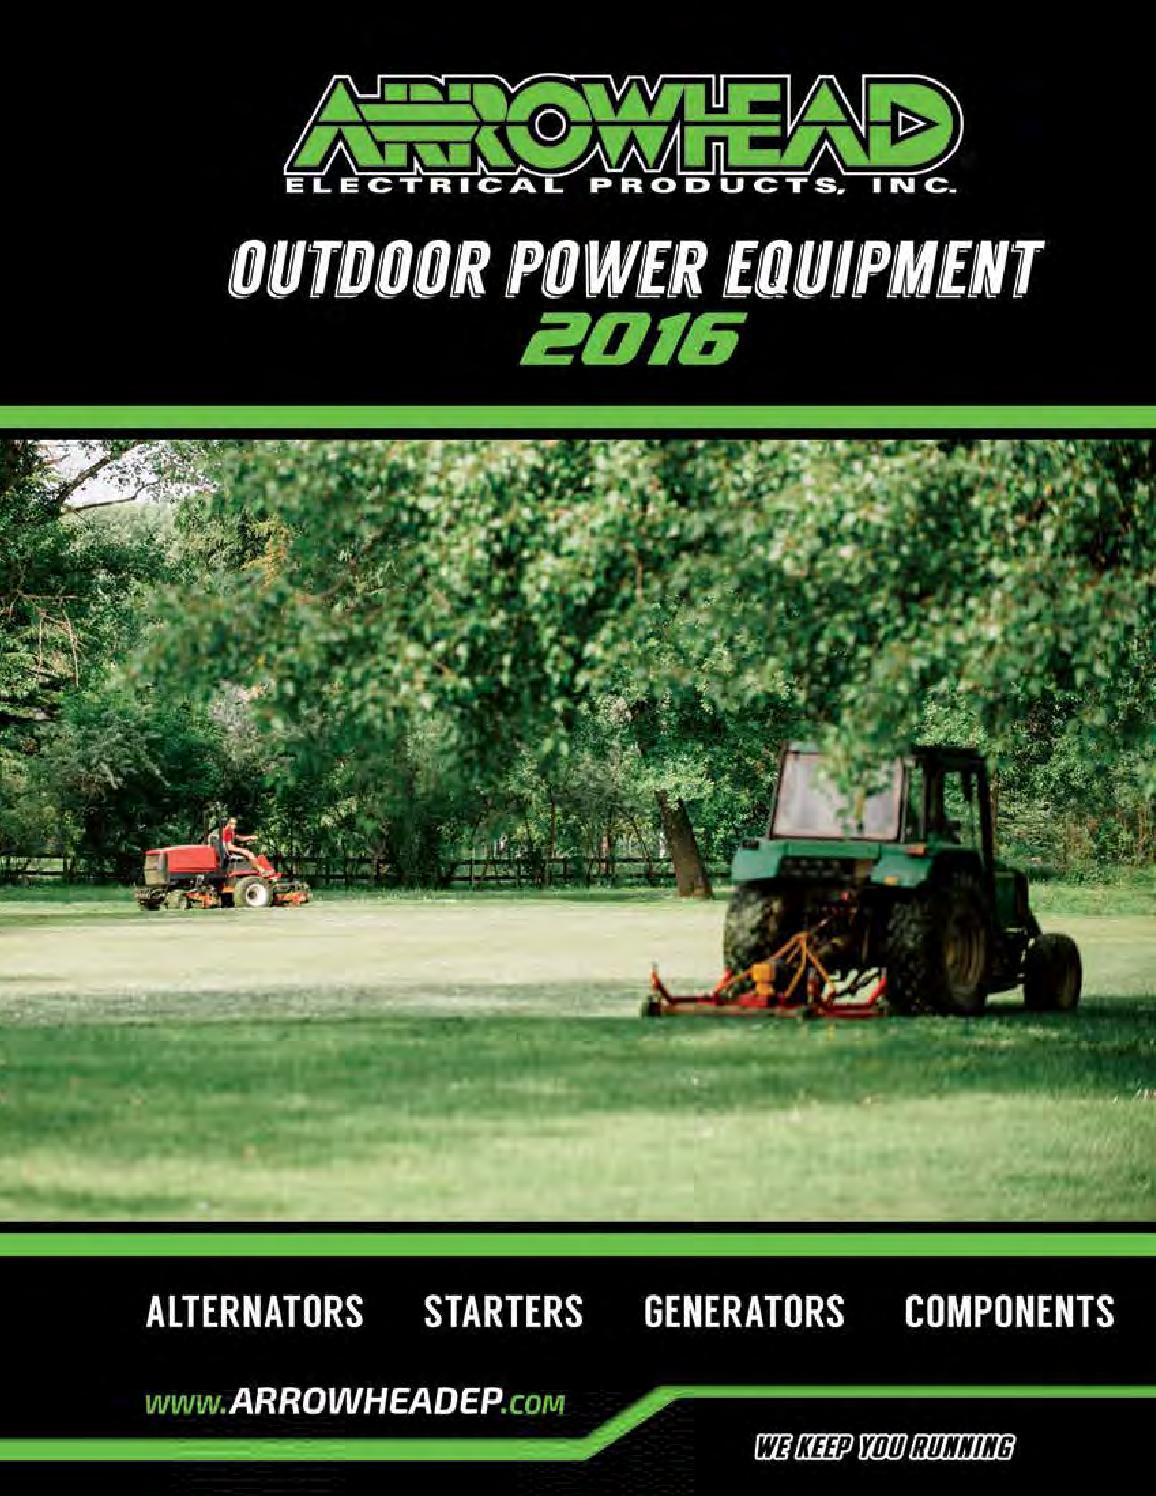 Catalog-Outdoor Power Equipment 2016 by Arrowhead Electrical